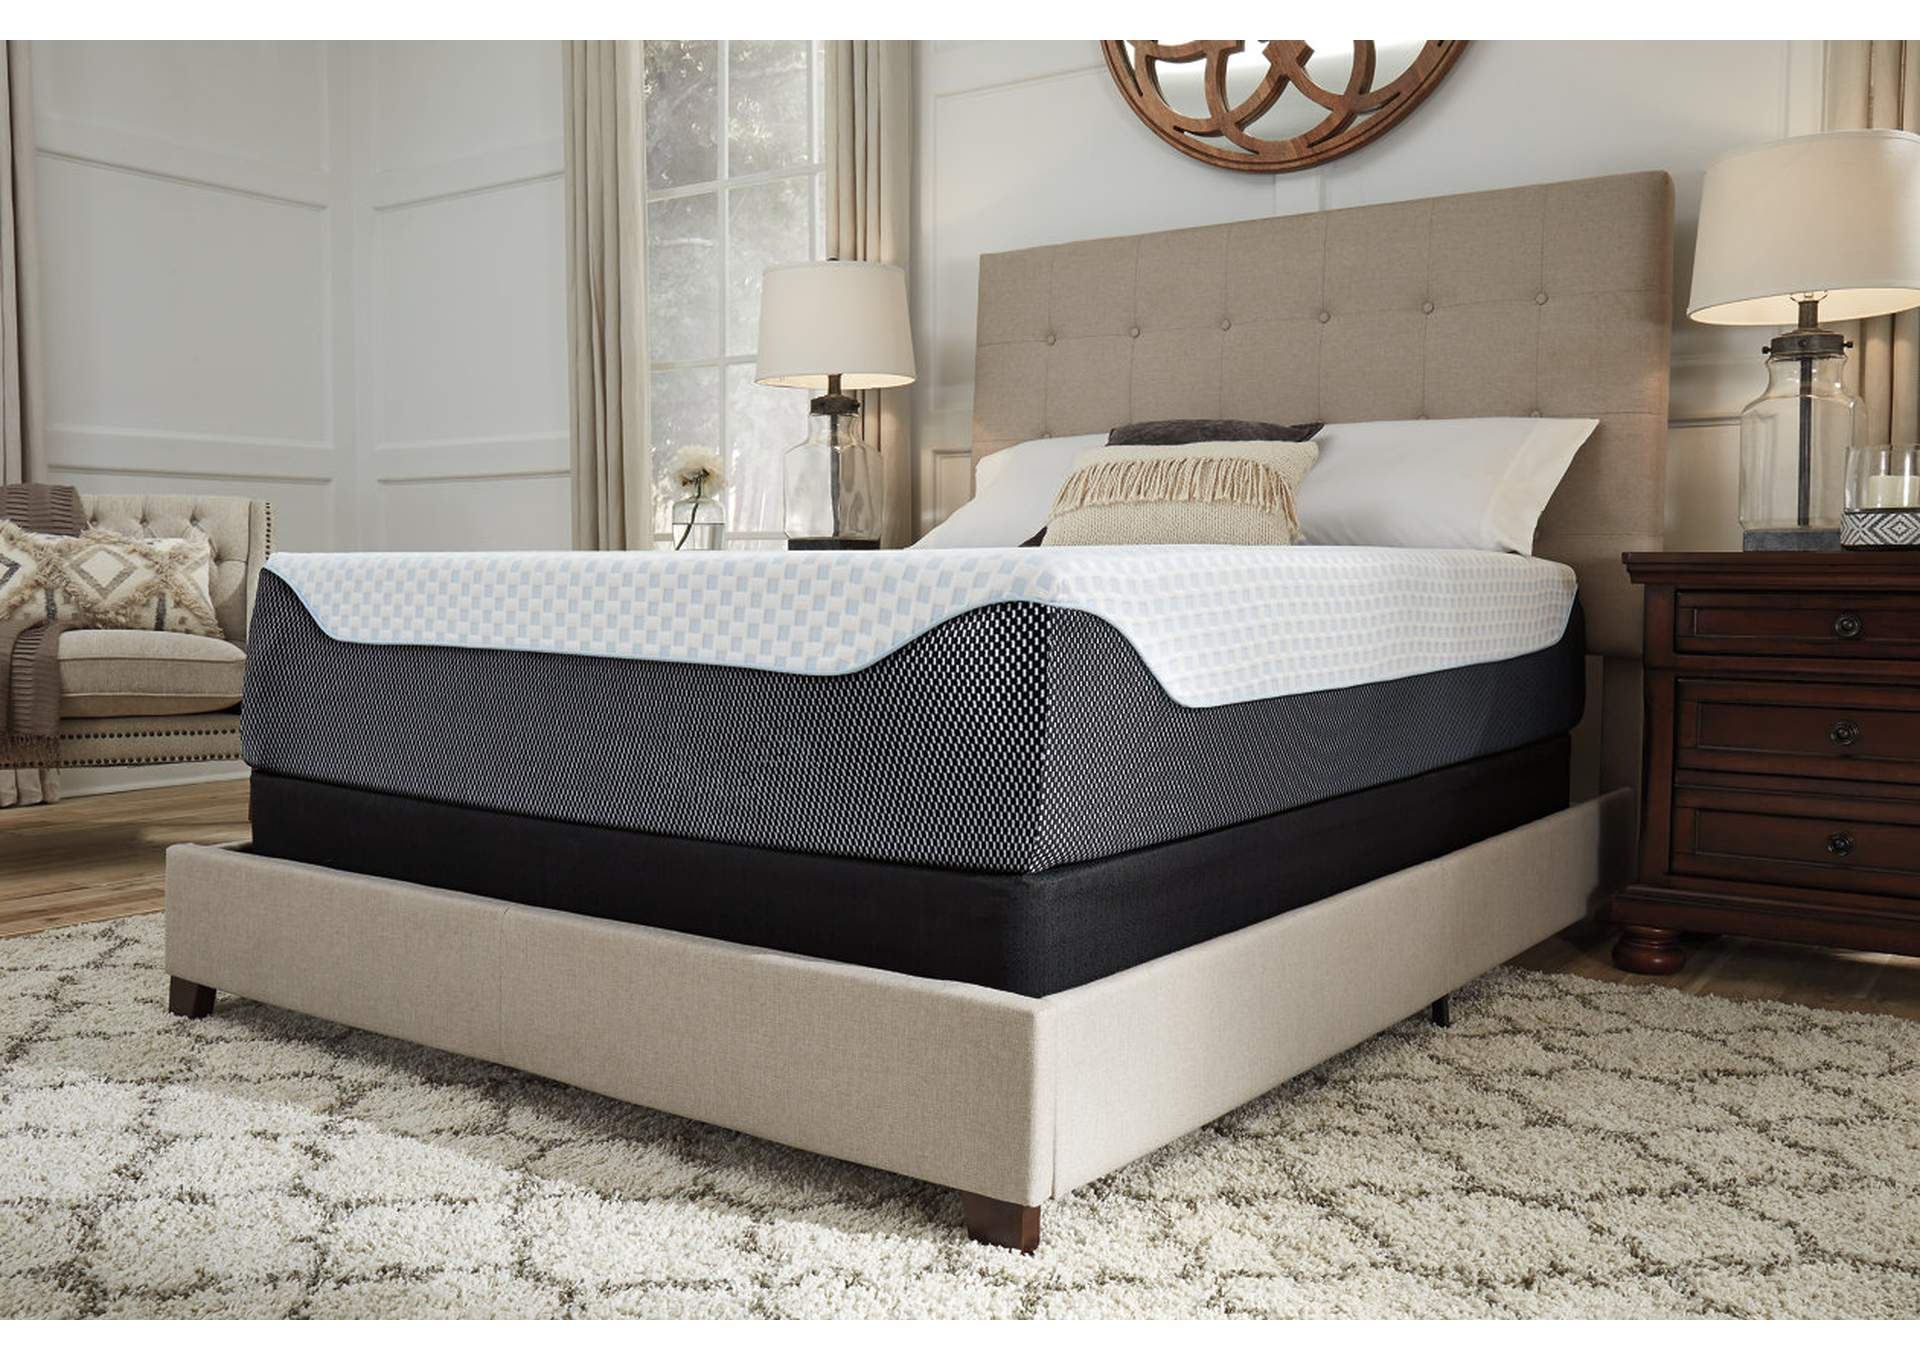 14 Inch Chime Elite California King Memory Foam Mattress in a Box,Sierra Sleep by Ashley